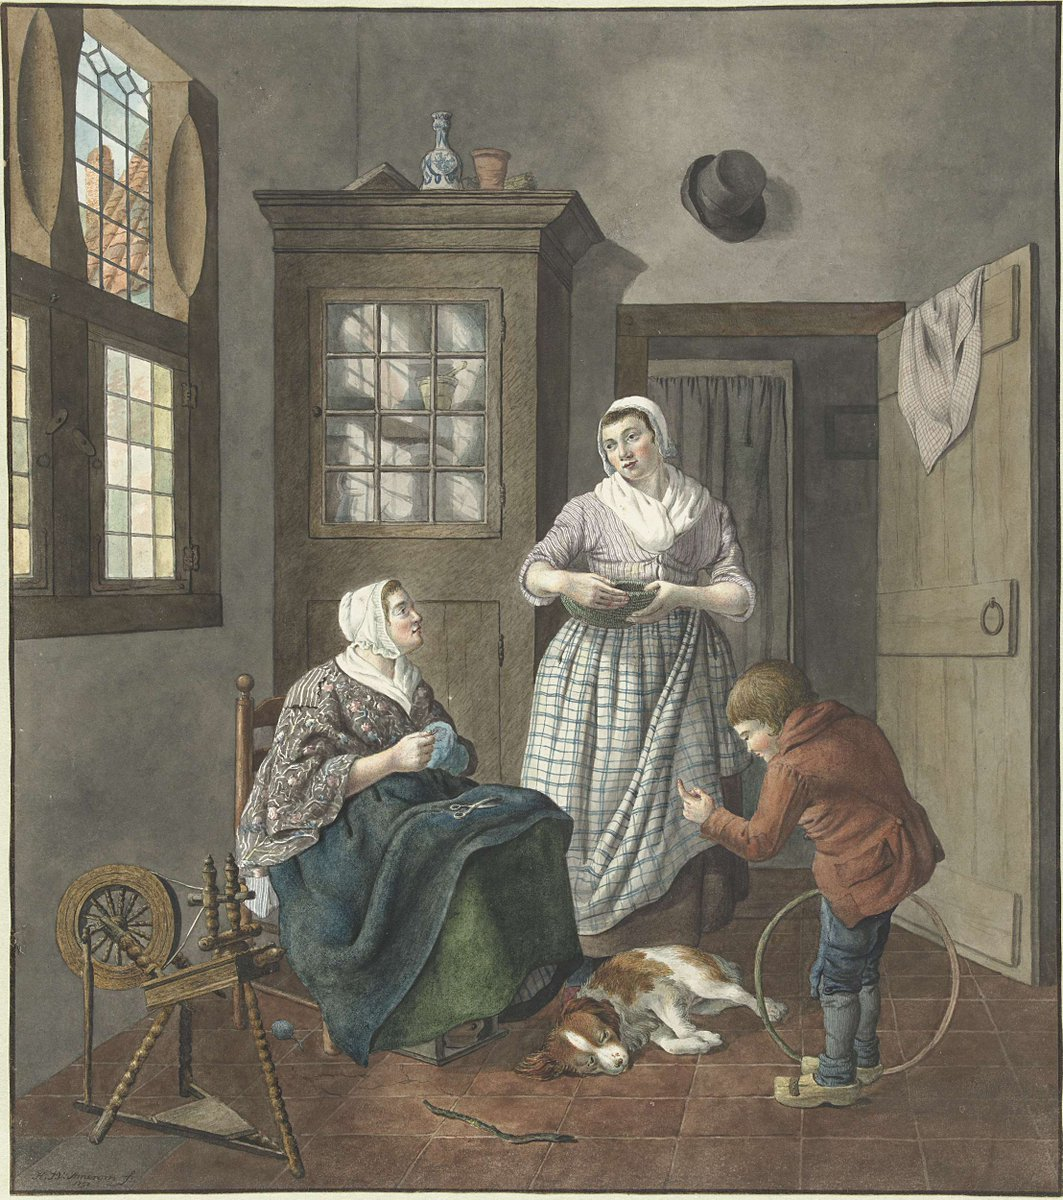 test Twitter Media - Interieur met naaiende vrouw, dienstmeid en spelende jongen, 1797 https://t.co/XameV48LRa #museumarchive #europeana https://t.co/4sv3Z2bhnd